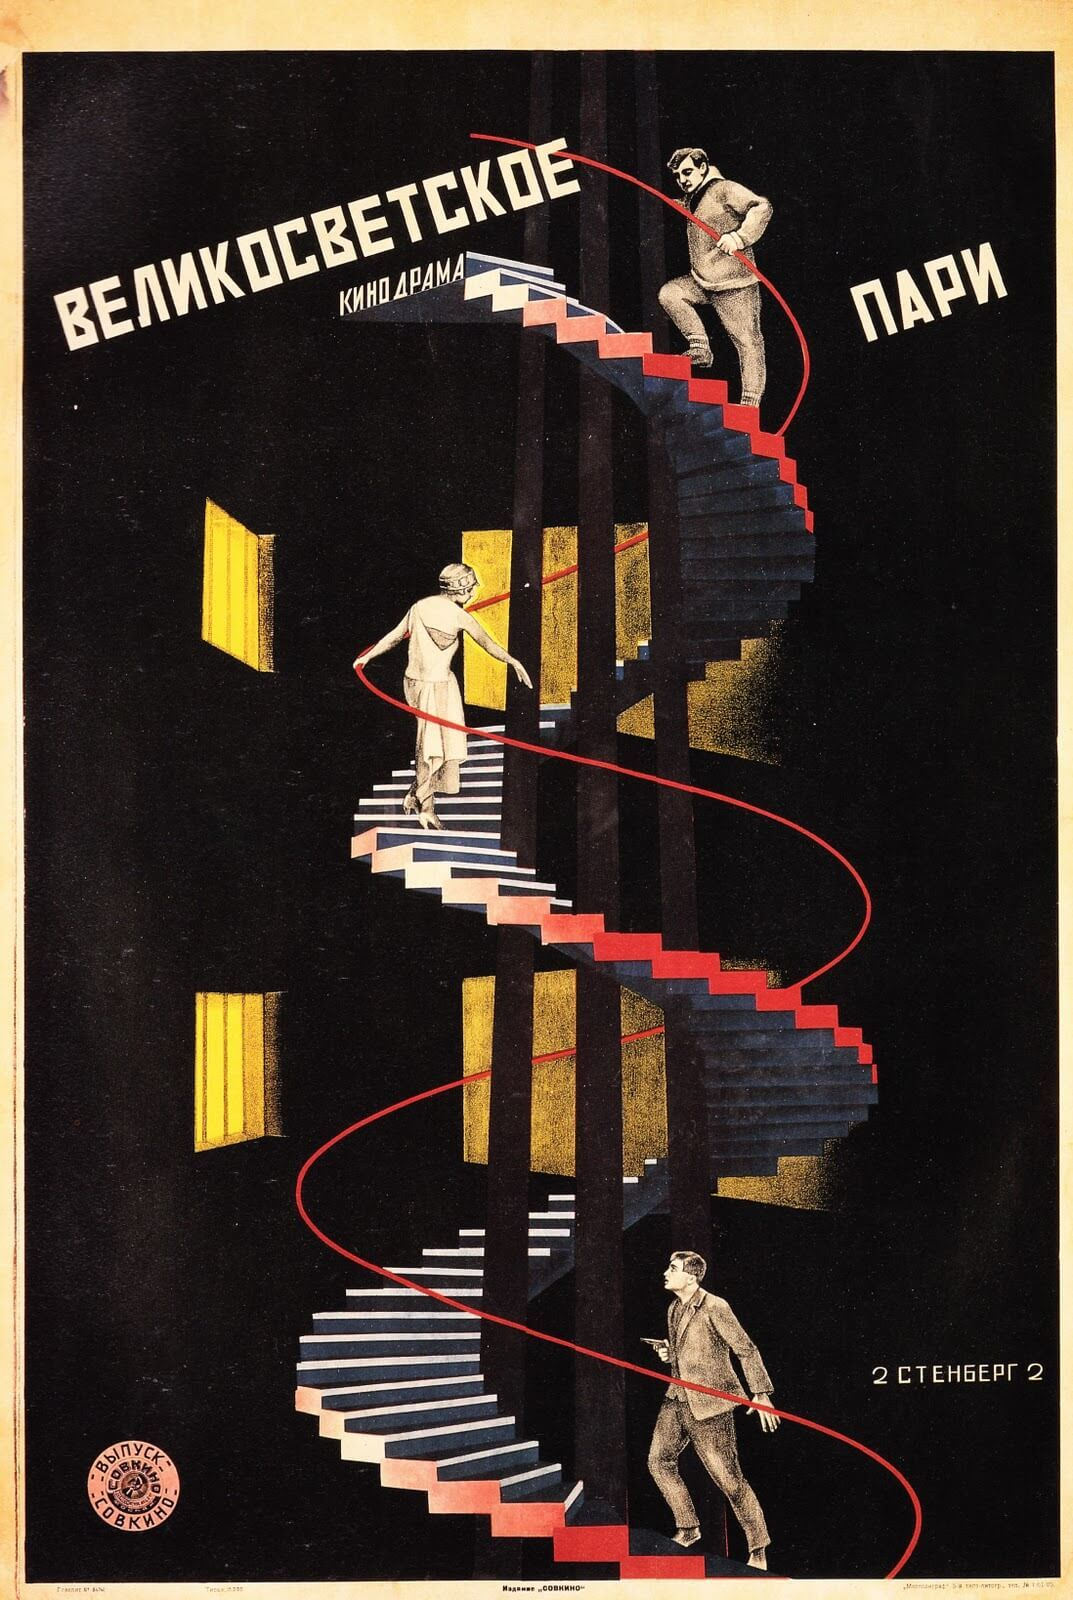 30s poster design - The Stenberg Brothers Vladimir And Georgii Were Russian Swedish Designers Known For Creating Avant Garde Constructivist Theater And Film Posters In